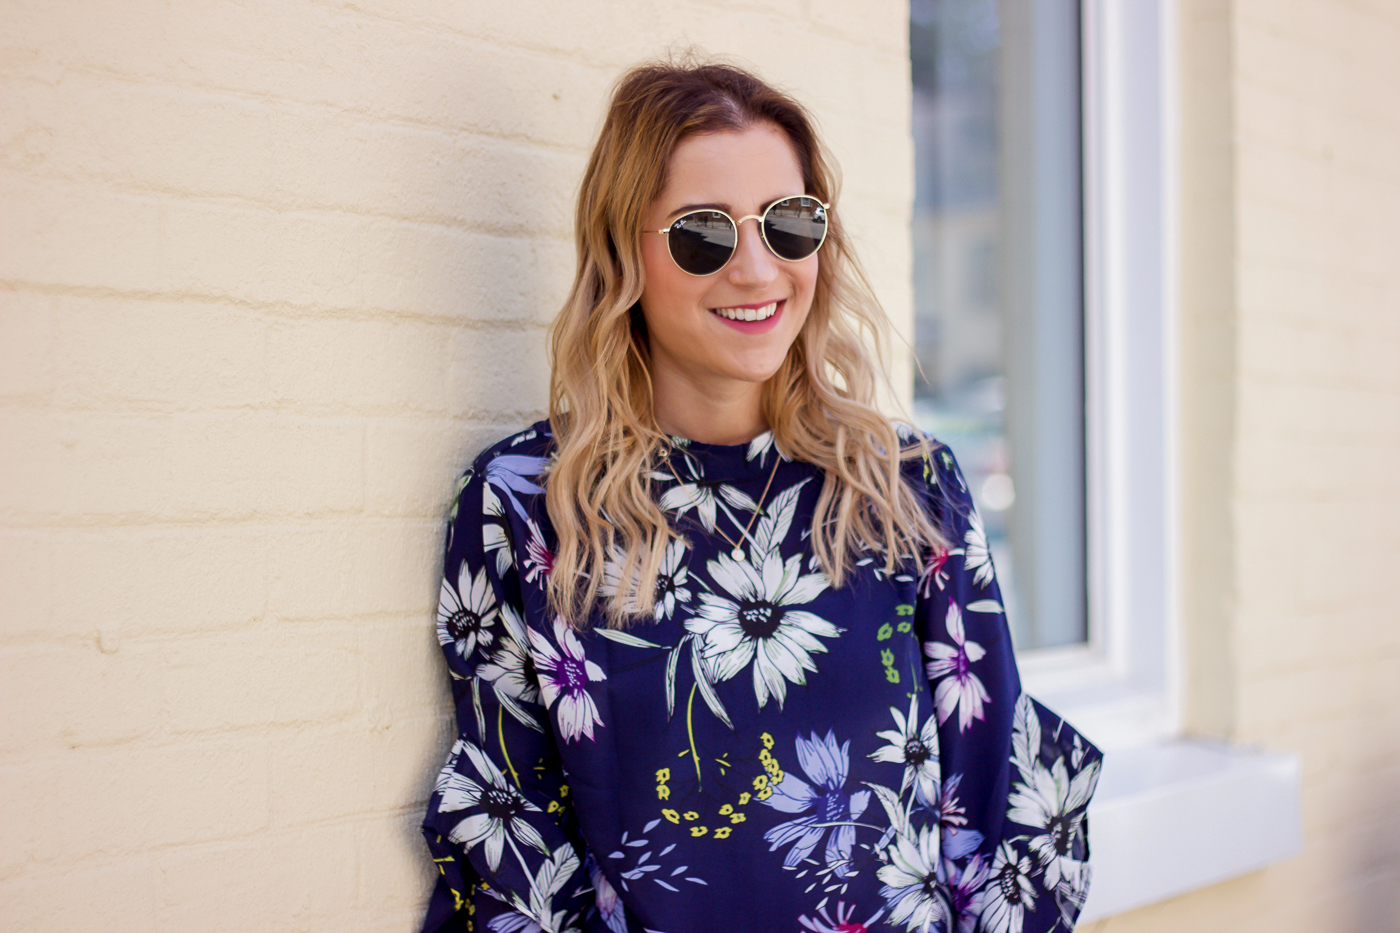 Jackie Goldhar is a Toronto-based fashion and lifestyle blogger, wearing a navy floral top from Chicwish